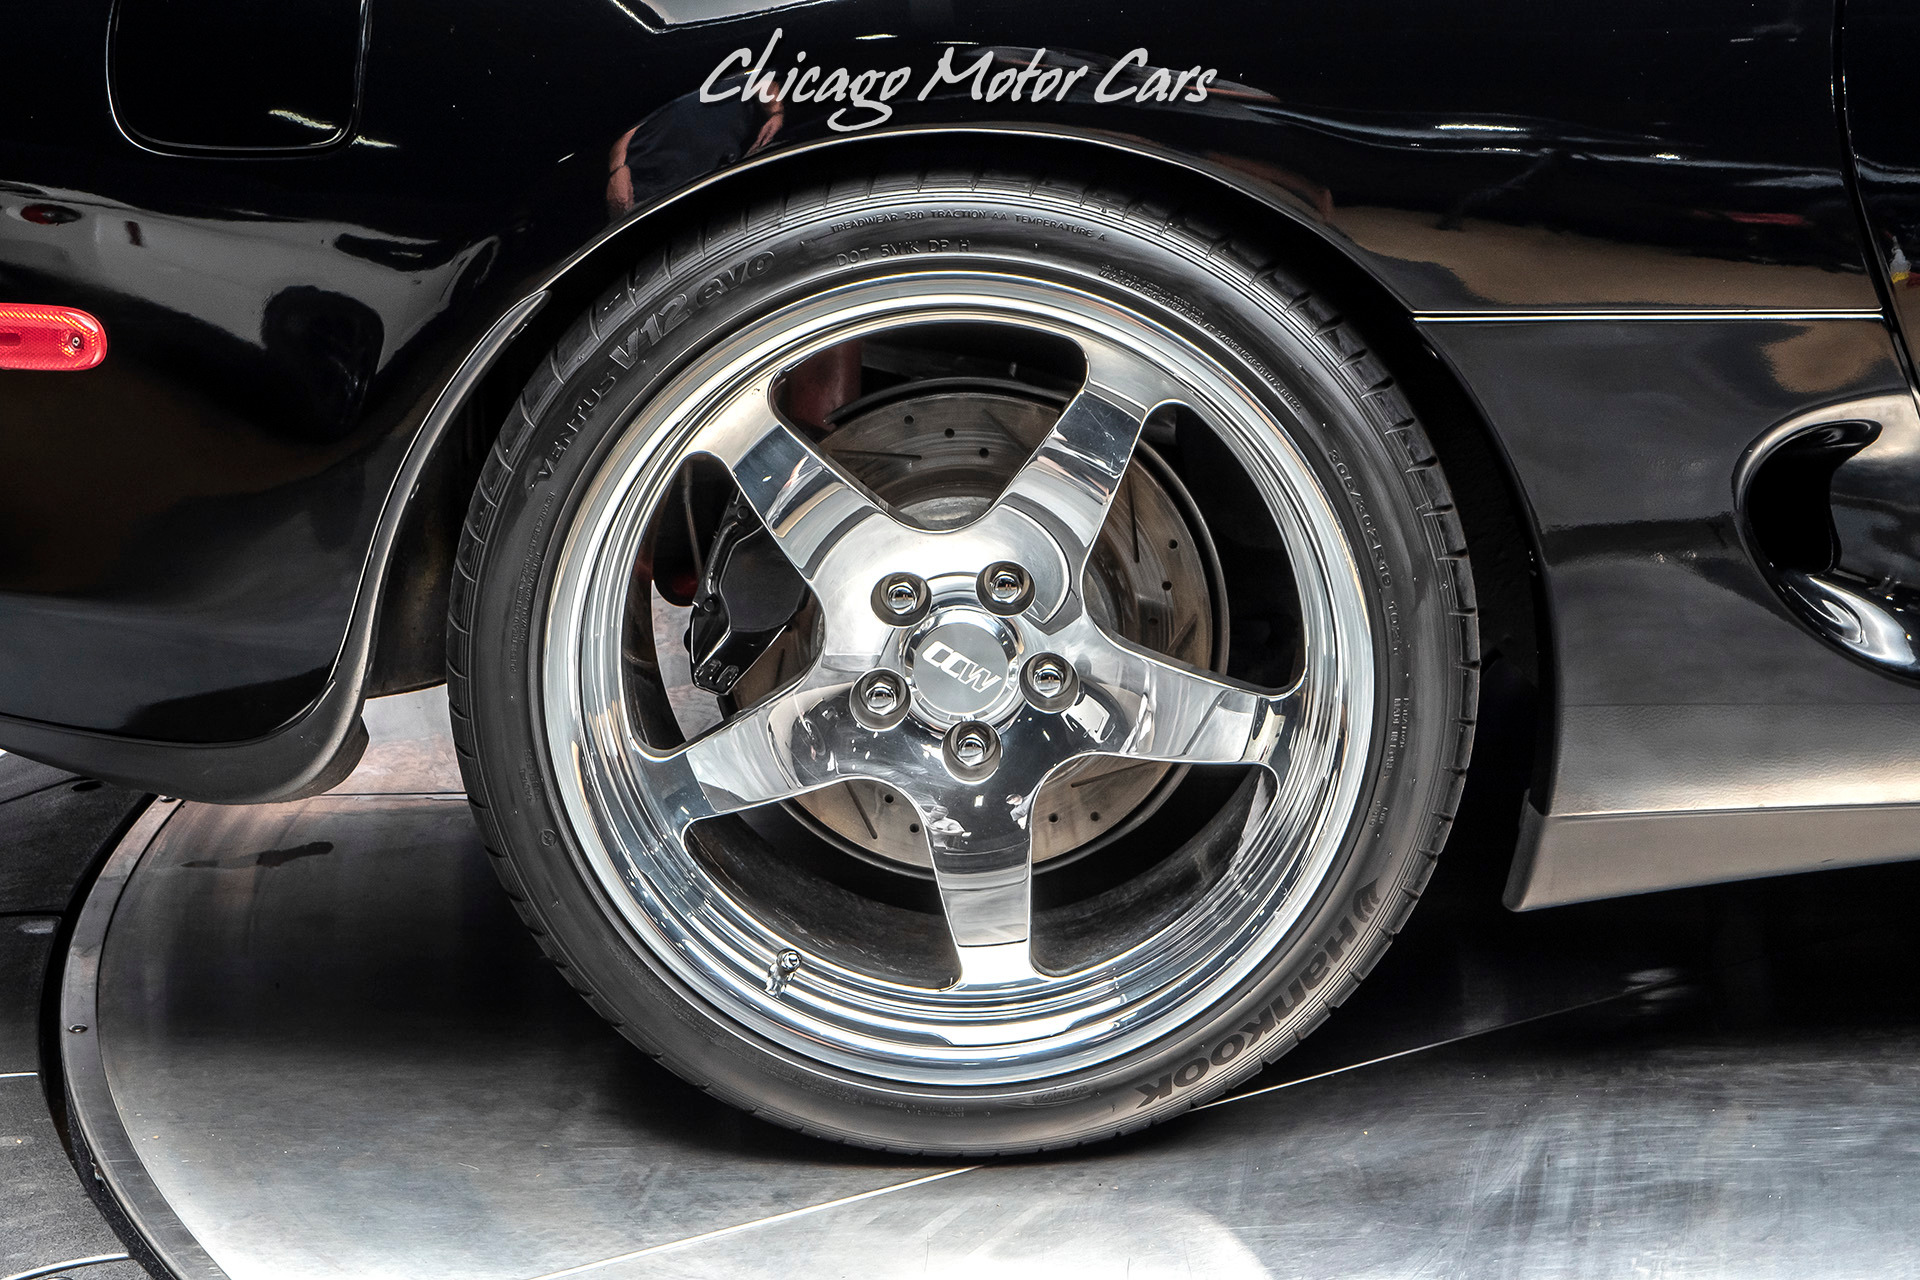 Used-1994-Toyota-Supra-Turbo-Hatchback-900-WHP-1-OF-15-FACTORY-6-SPEED-HARDTOPS